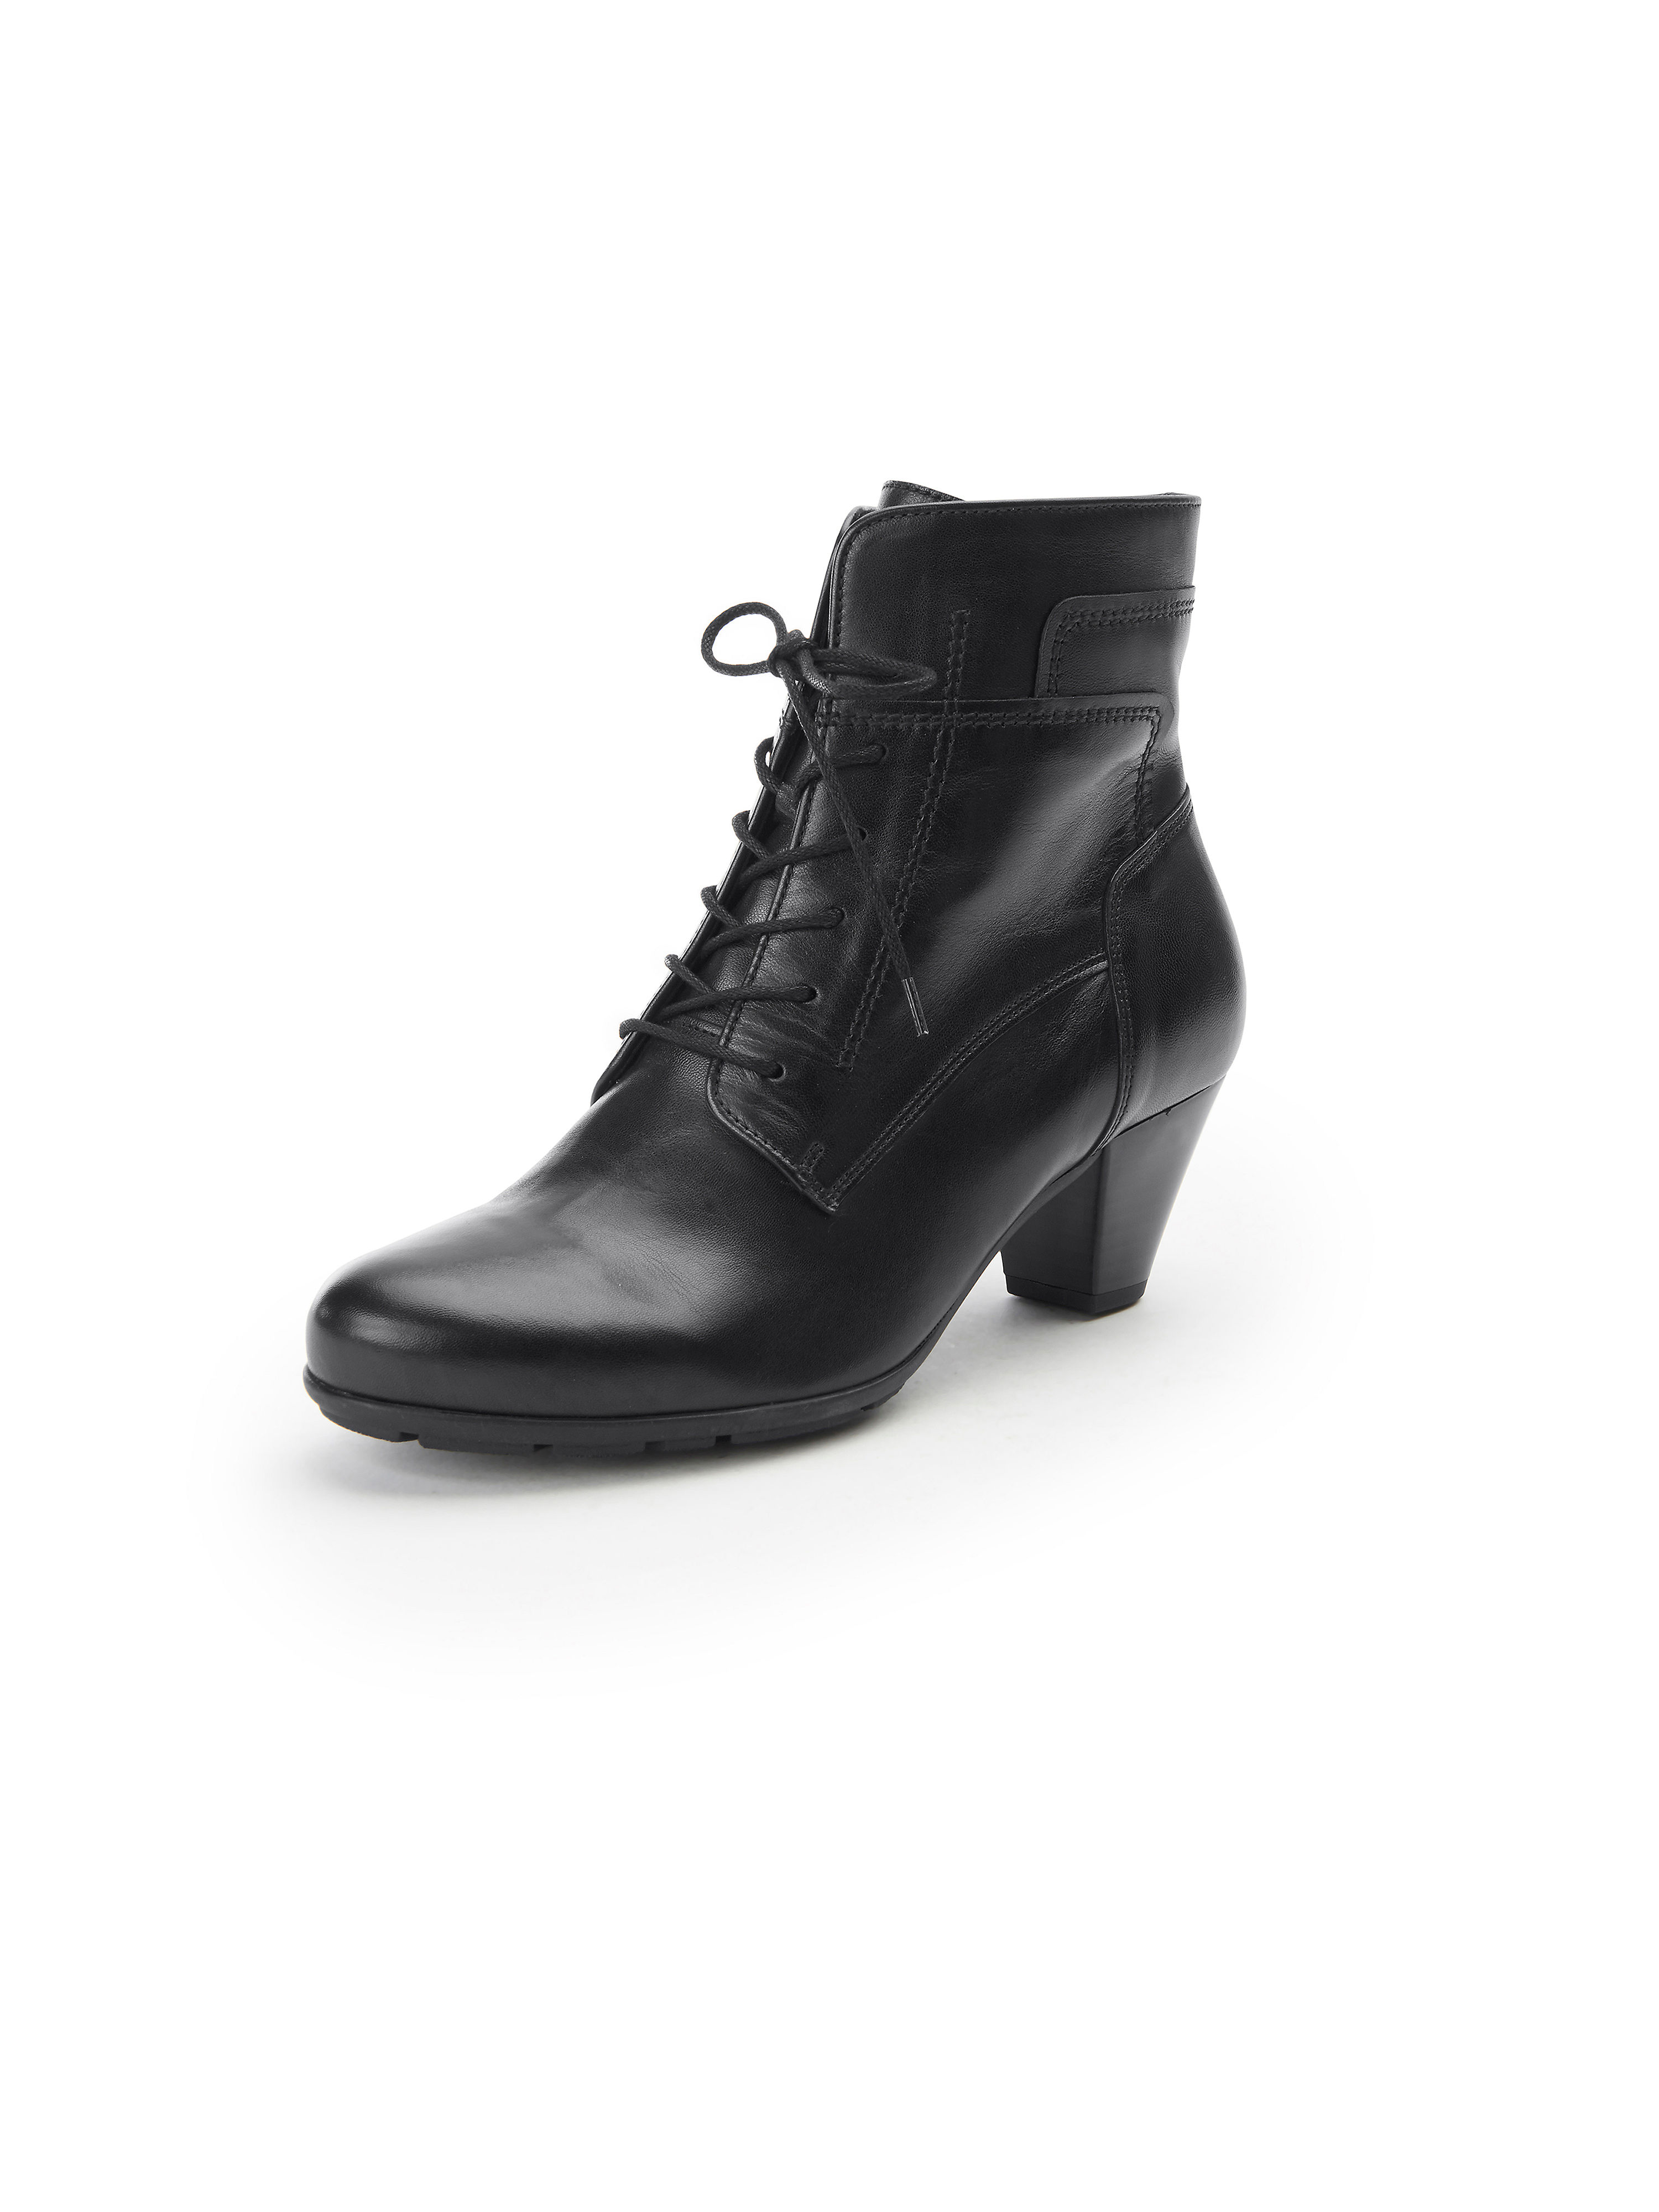 Les bottines cuir nappa  Gabor noir taille 38